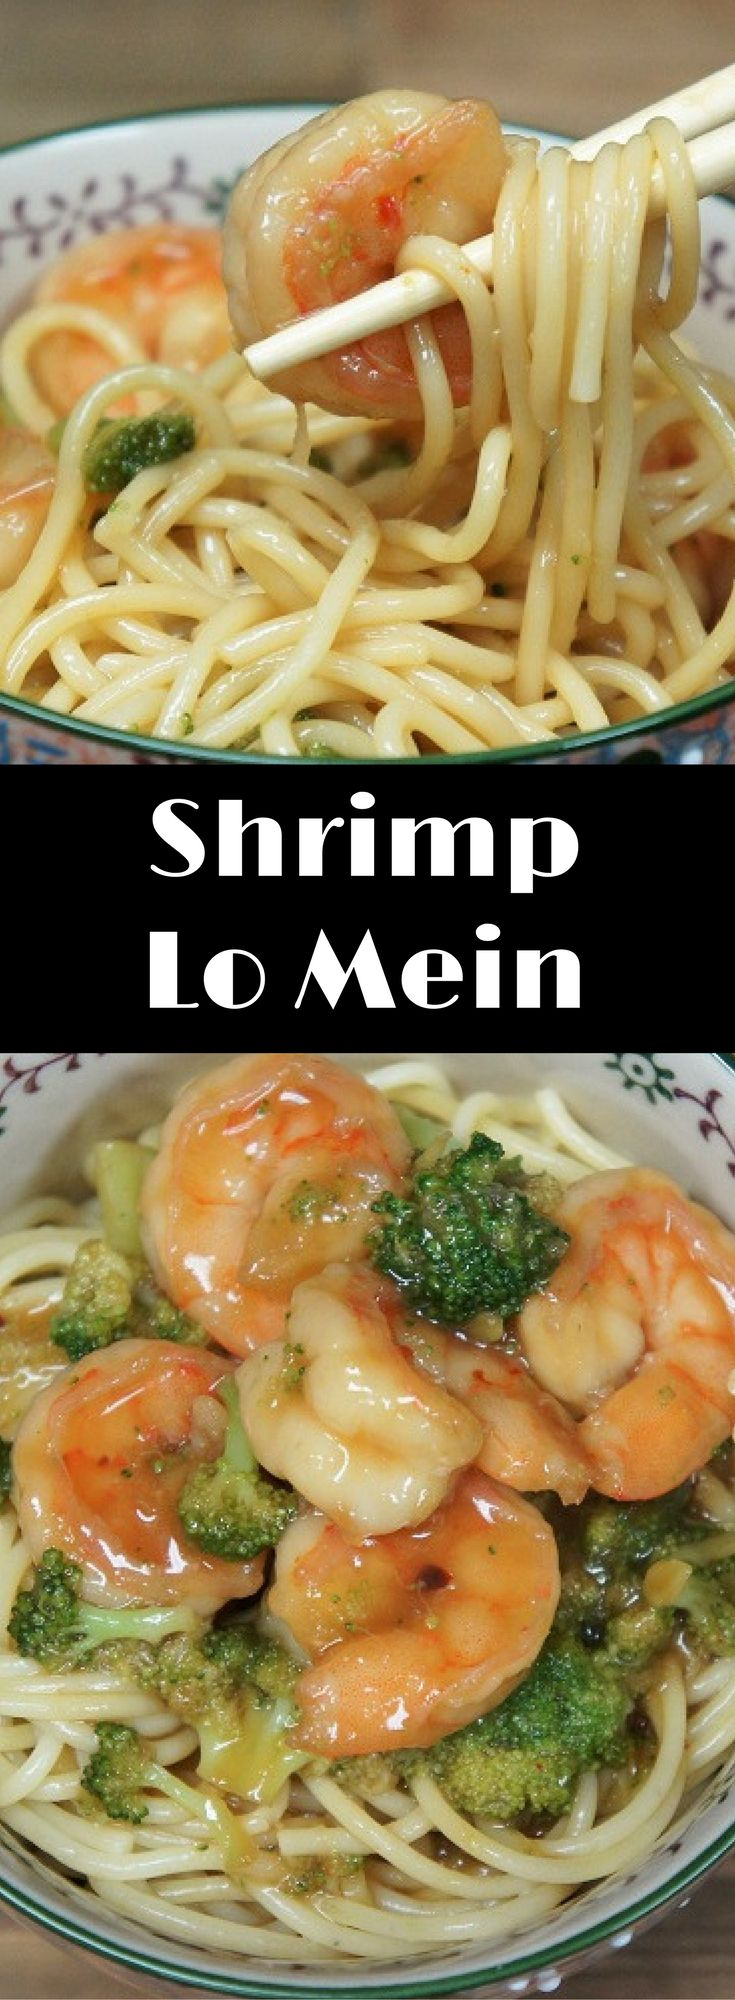 This Shrimp Lo Mein recipe is quick, easy and delicious, making it a perfect dinner for busy weeknights. We use prepackaged, steam-in-the bag broccoli and frozen, clean, easy-to- peel shrimp to make this meal even easier. No Lo Mein noodles on hand? No problem. Just grab a box of spaghetti from the pantry, they're just as delicious.